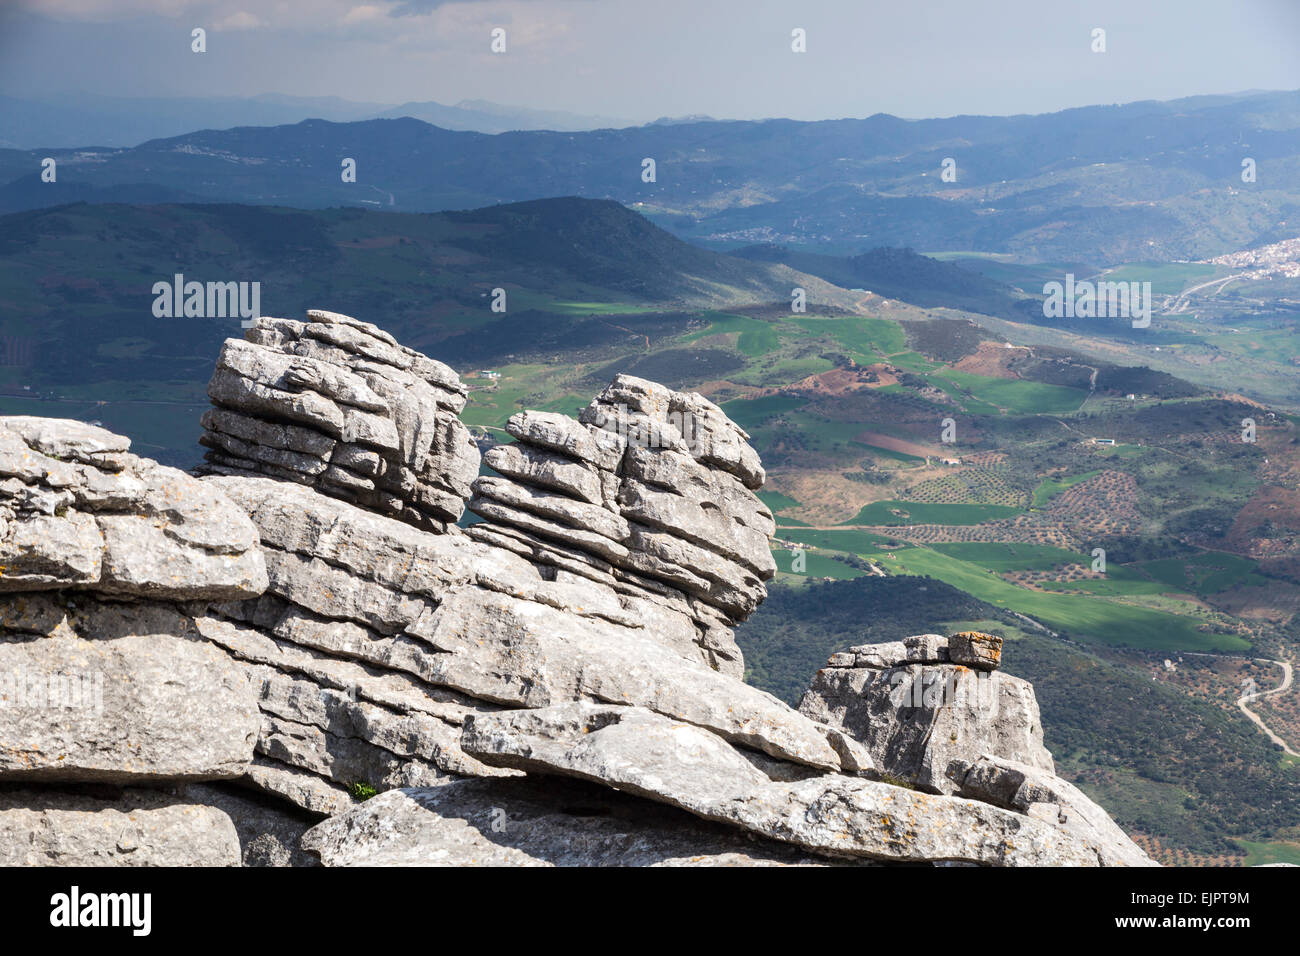 Torcal de Antequera, Andalusia, Spain - Stock Image